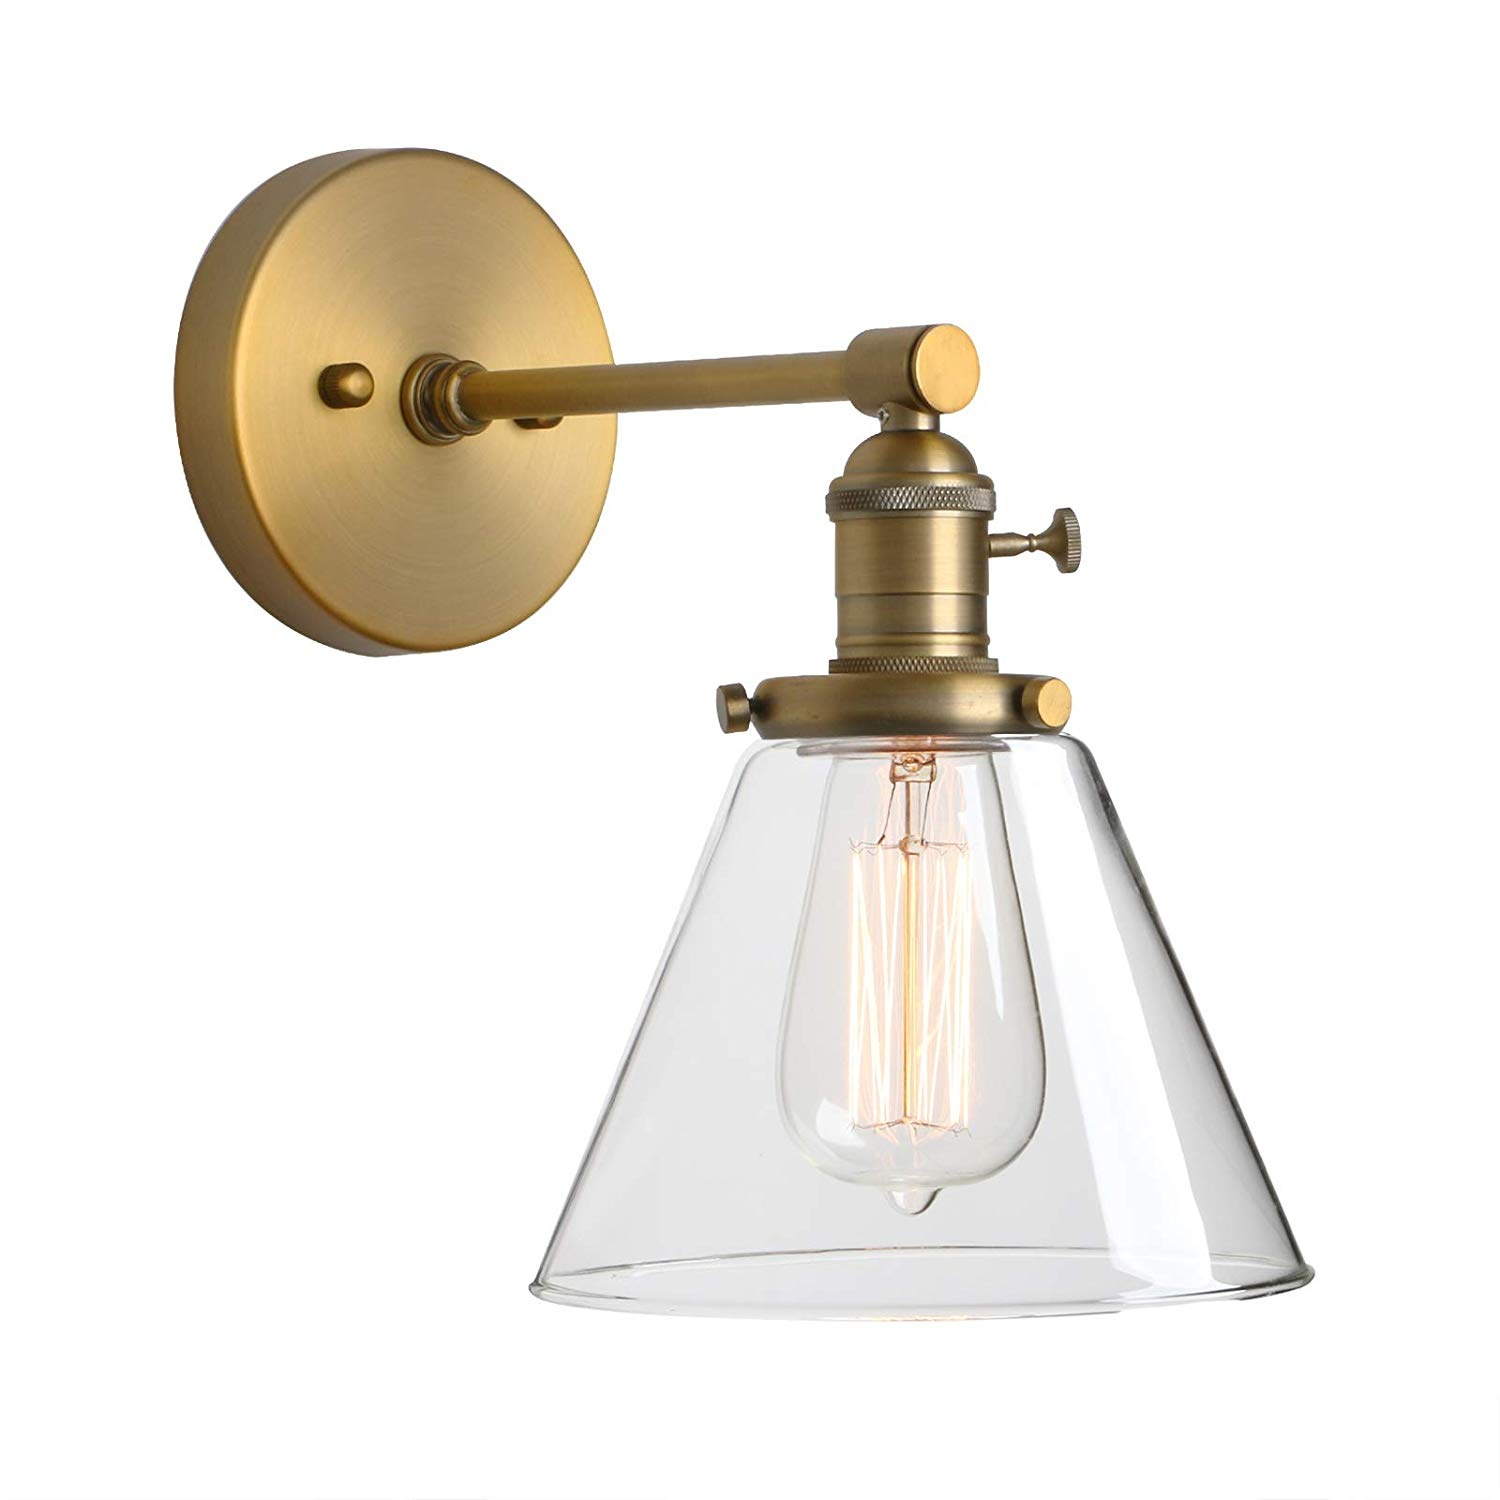 Brass Sconce with Glass for Bathroom Mirror